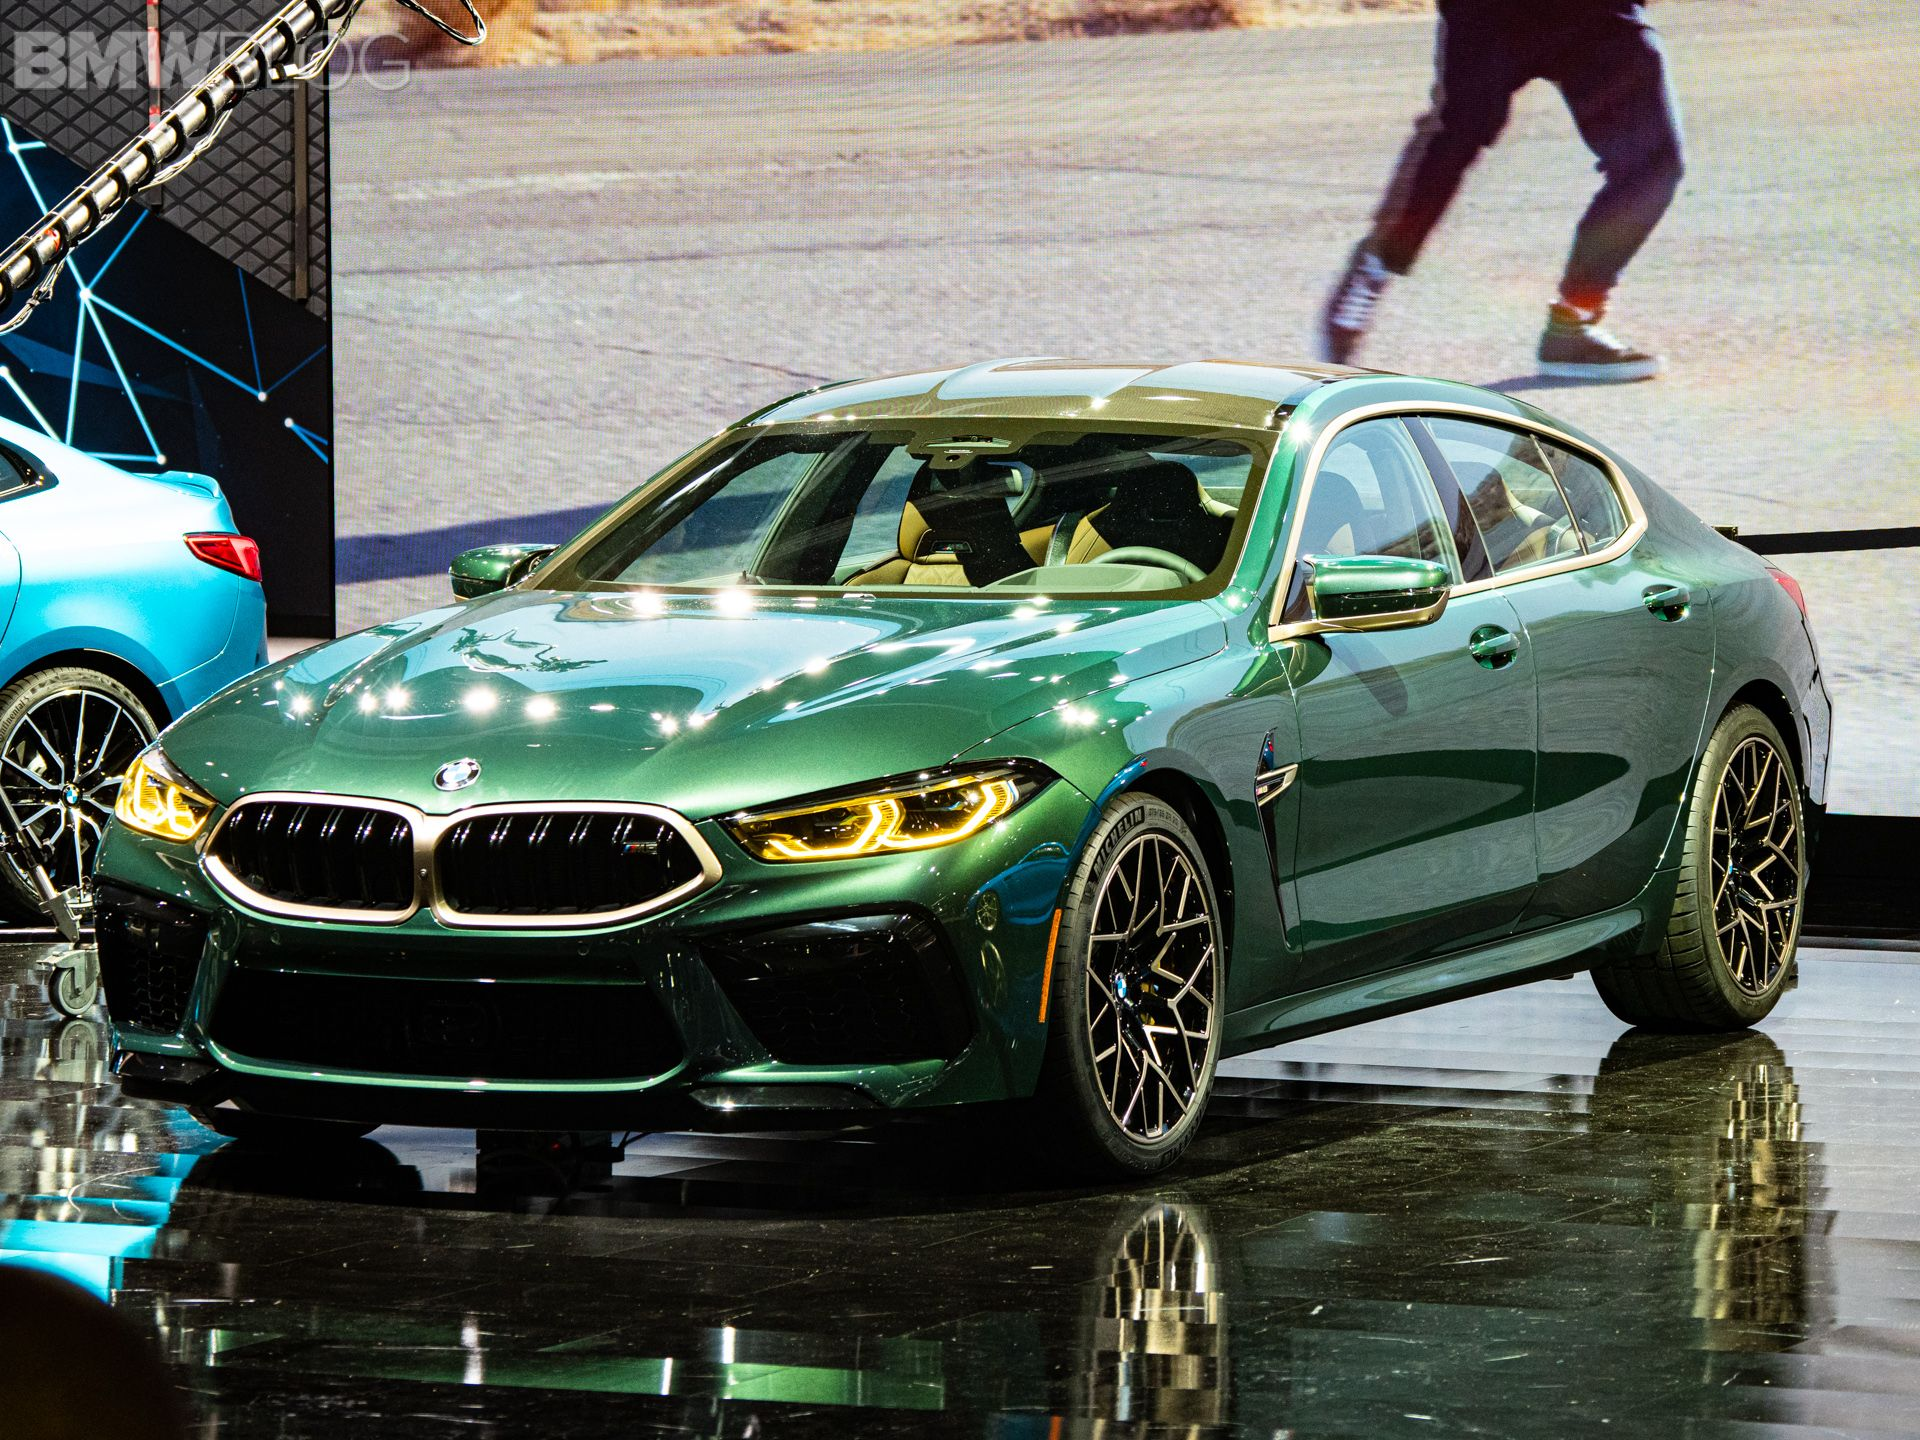 3840x2400 2020 Bmw M8 Gran Coupe First Edition Green Car